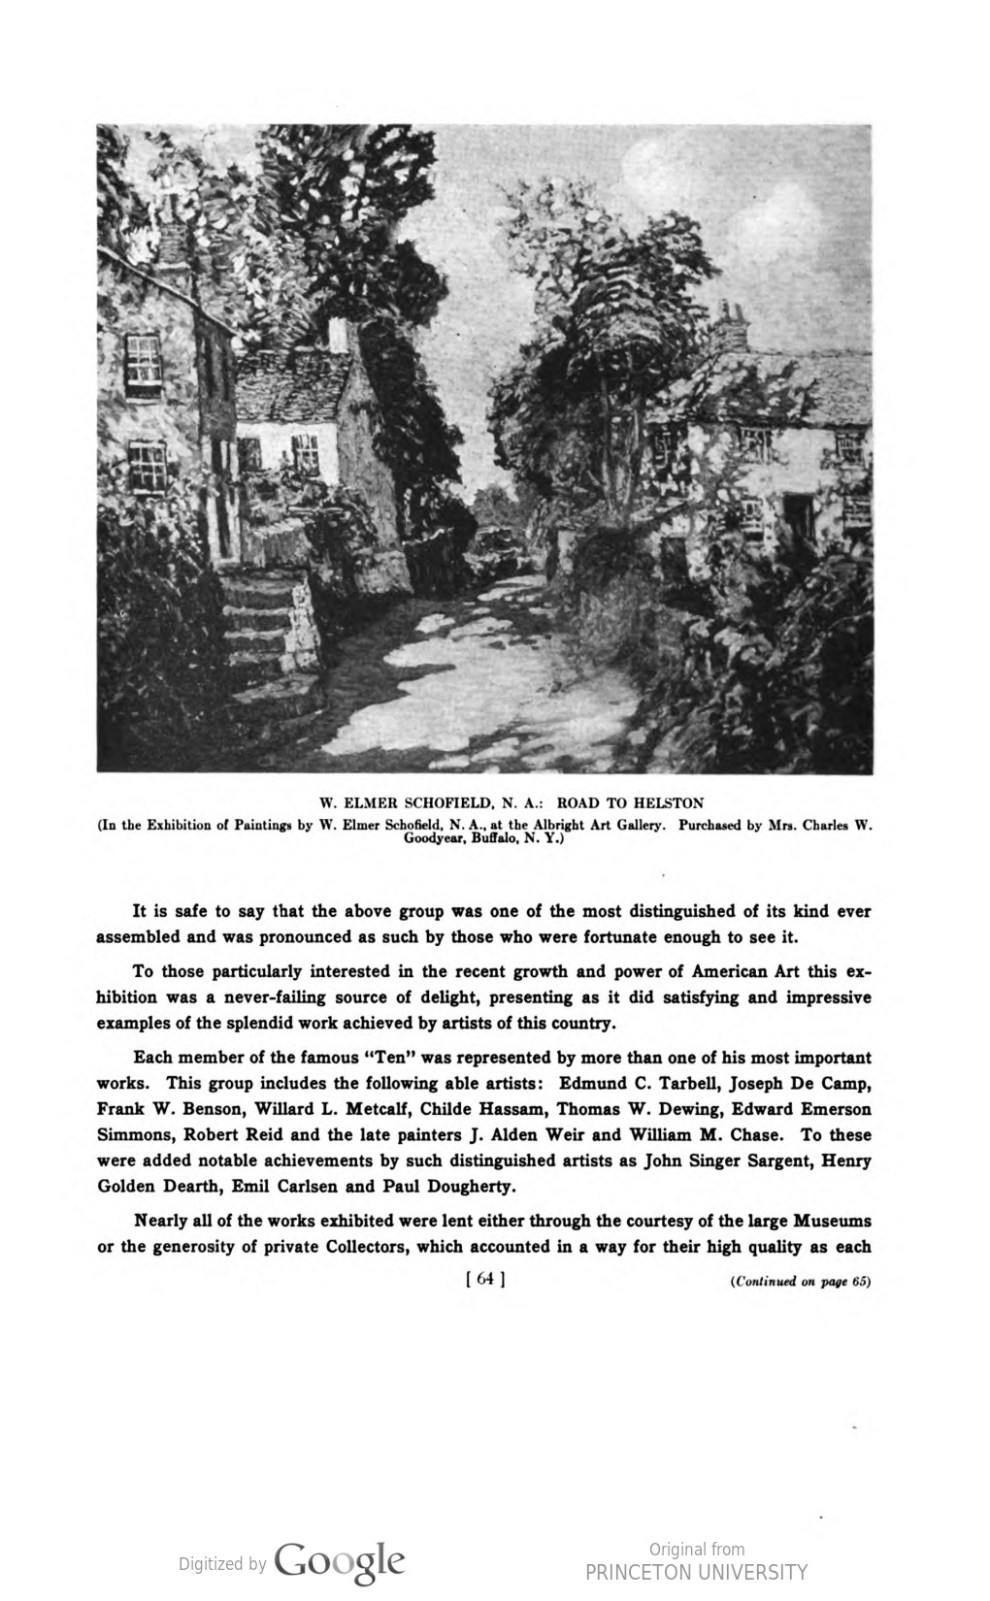 """Academy Notes, Buffalo Fine Arts Academy, Albright Art Gallery, Buffalo, NY, """"Exhibition of Works by the American Painters, Sculptors and Engravers"""", July - December, 1920, Volume 15, Number 2, page 63-68, not illustrated"""